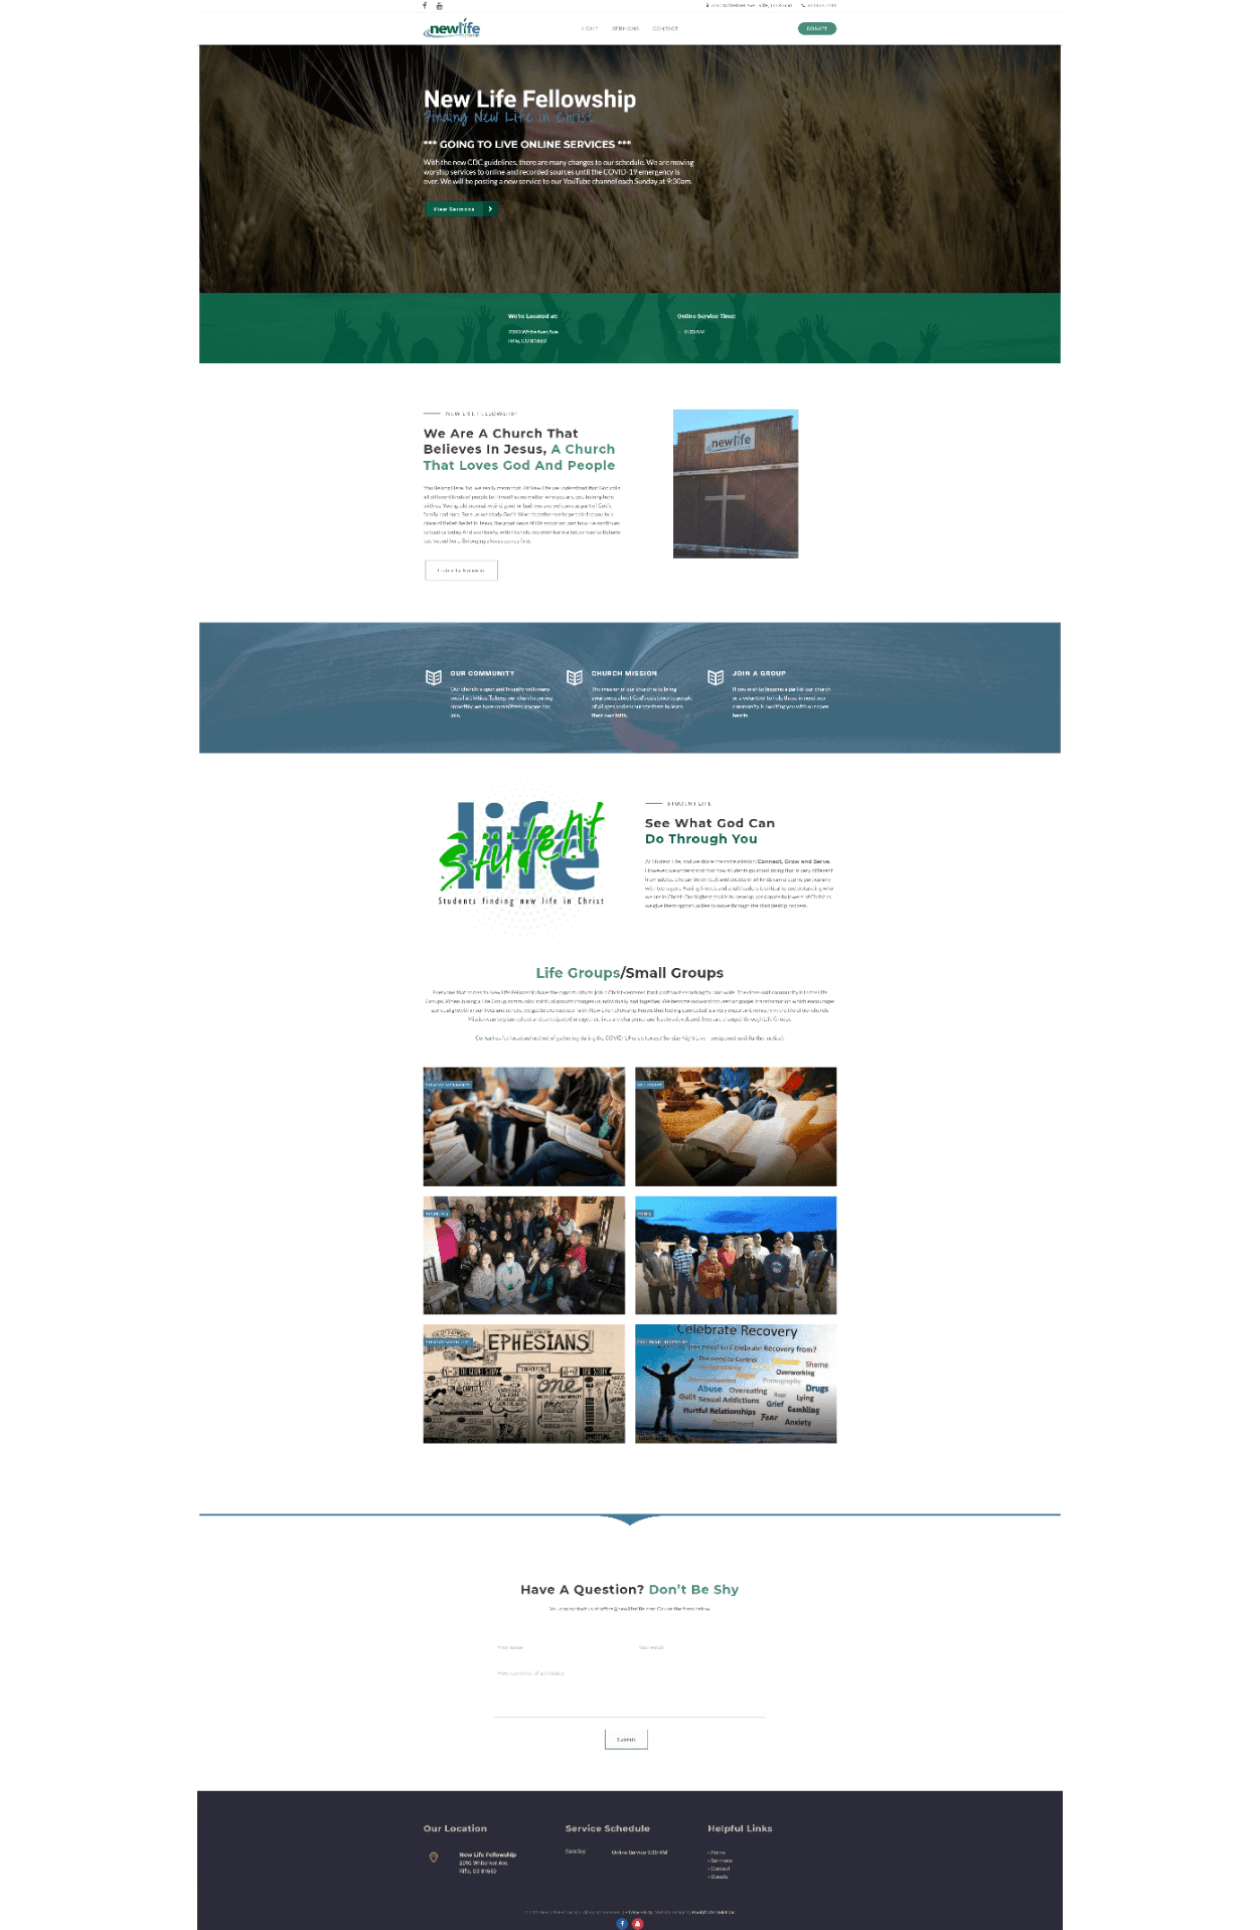 New Life Fellowship new website home page